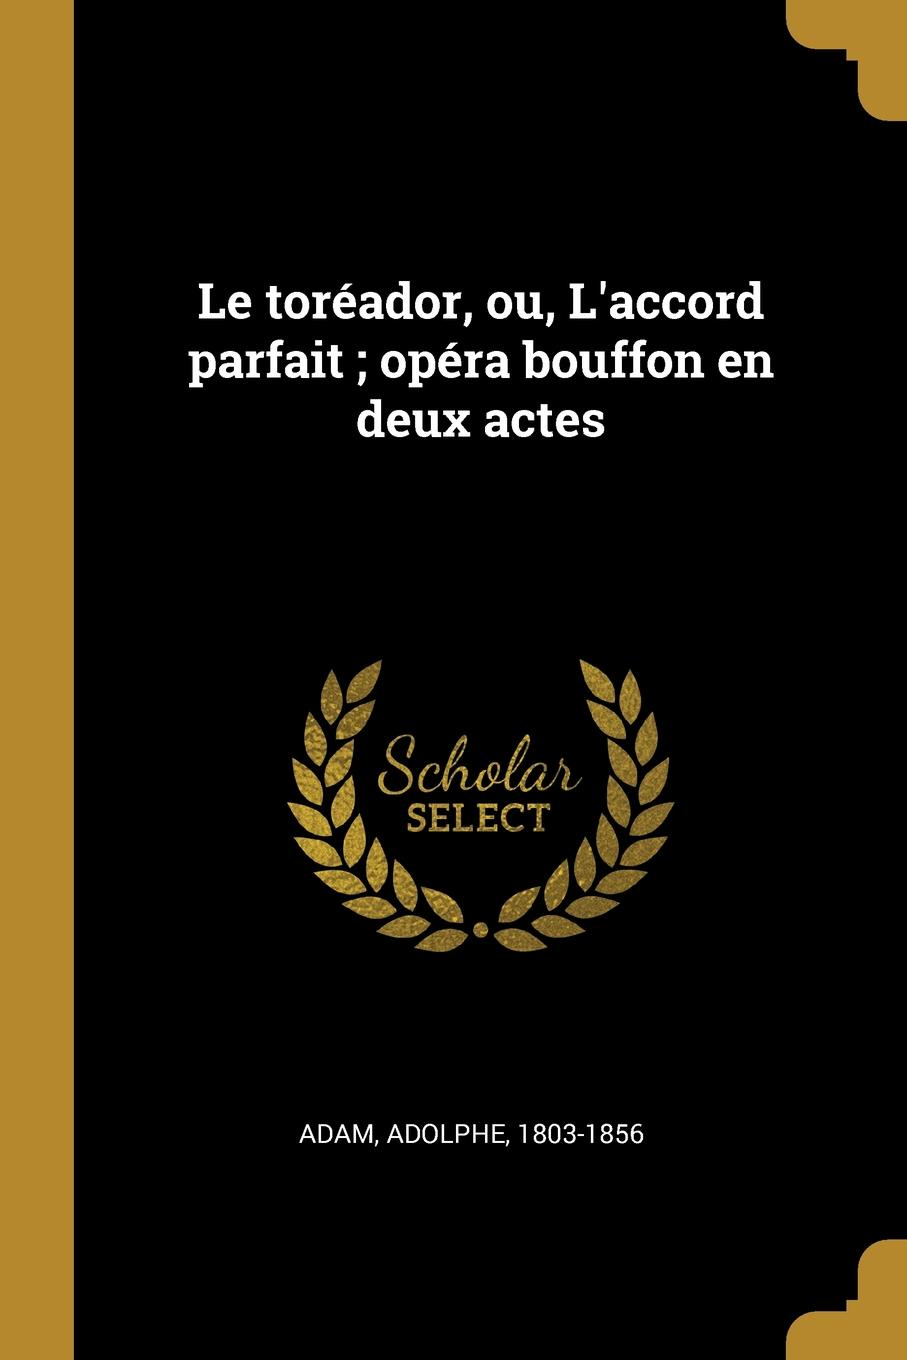 Adam Adolphe 1803-1856 Le toreador, ou, L.accord parfait ; opera bouffon en deux actes adolphe adam le toreador ou l accord parfait opera bouffon en deux actes french edition